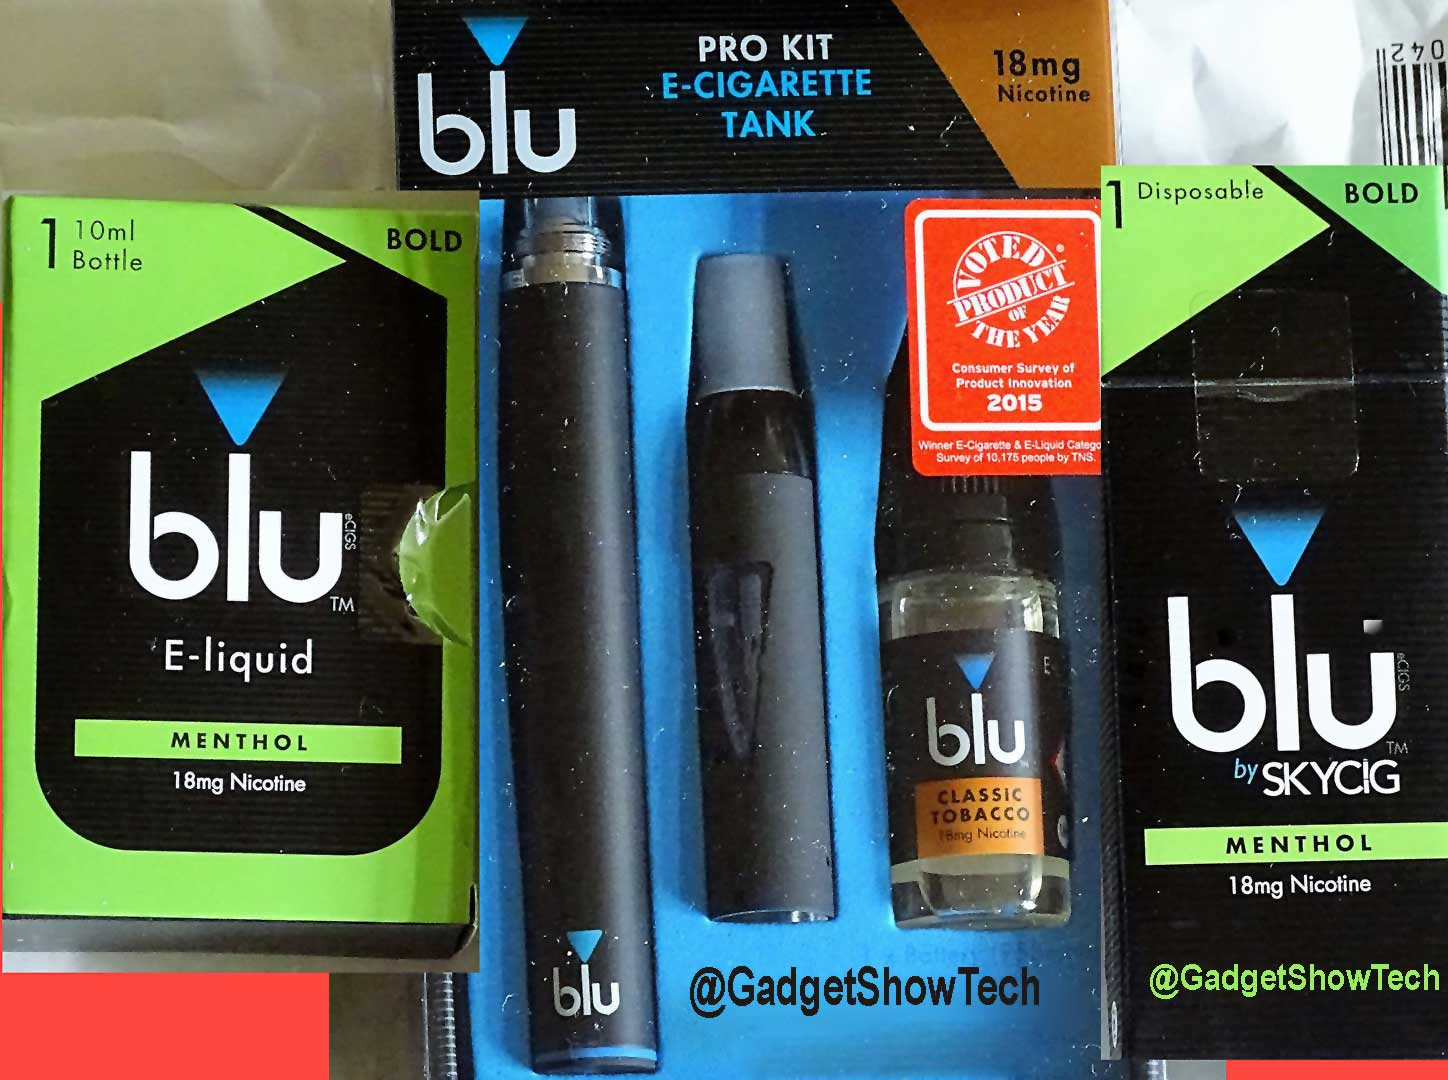 my guide and review of the blu Pro Kit